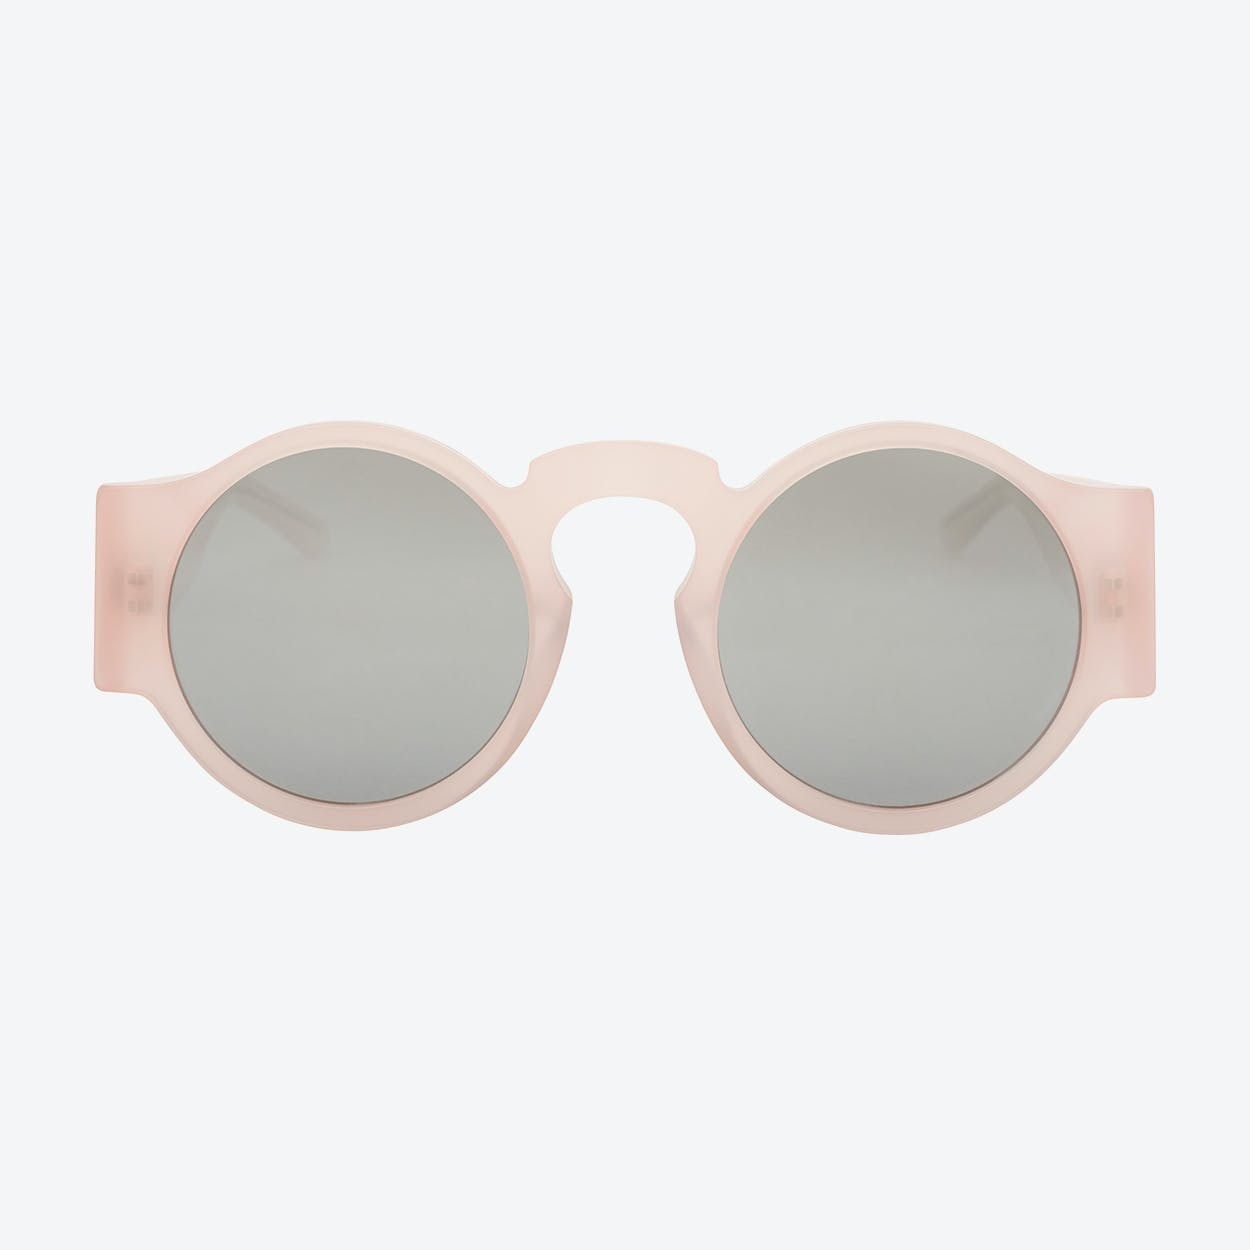 Didac Sunglasses in Pink